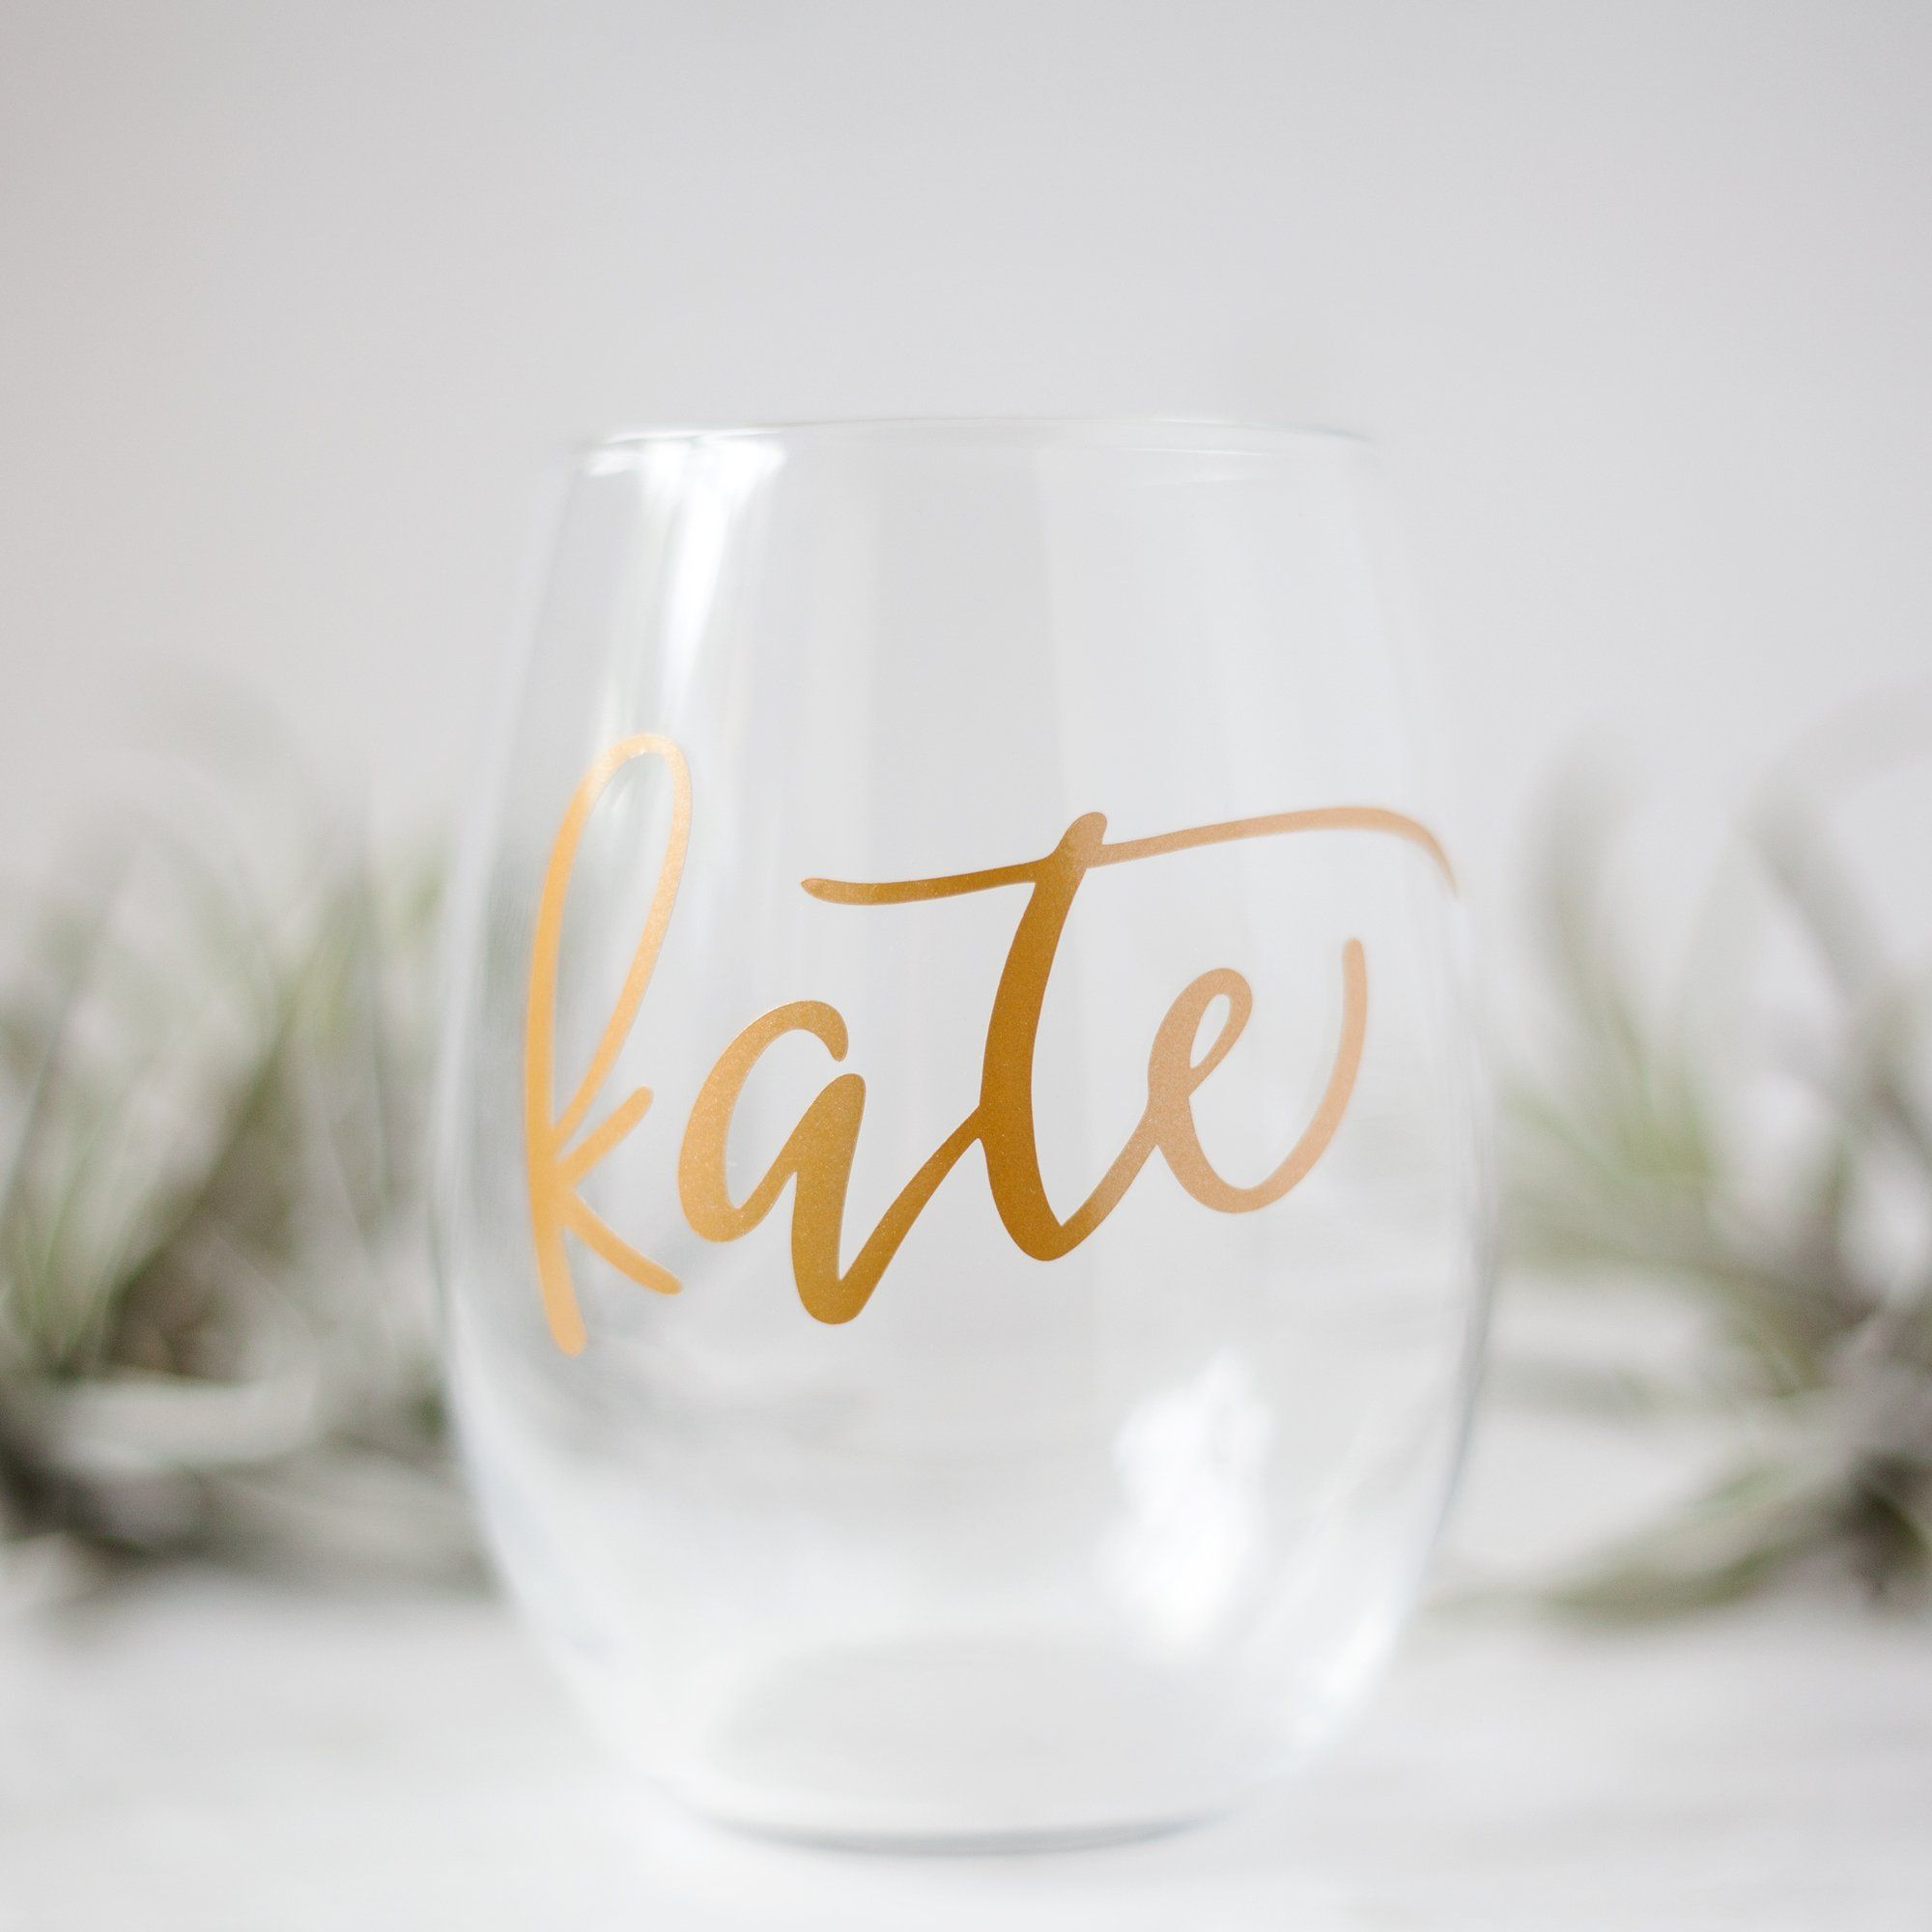 e6fc4c56c6b Our stemless wine glasses are perfect bridesmaid gifts! These are also  lovely for bridal showers, bachelorette parties, or rehearsal dinners.